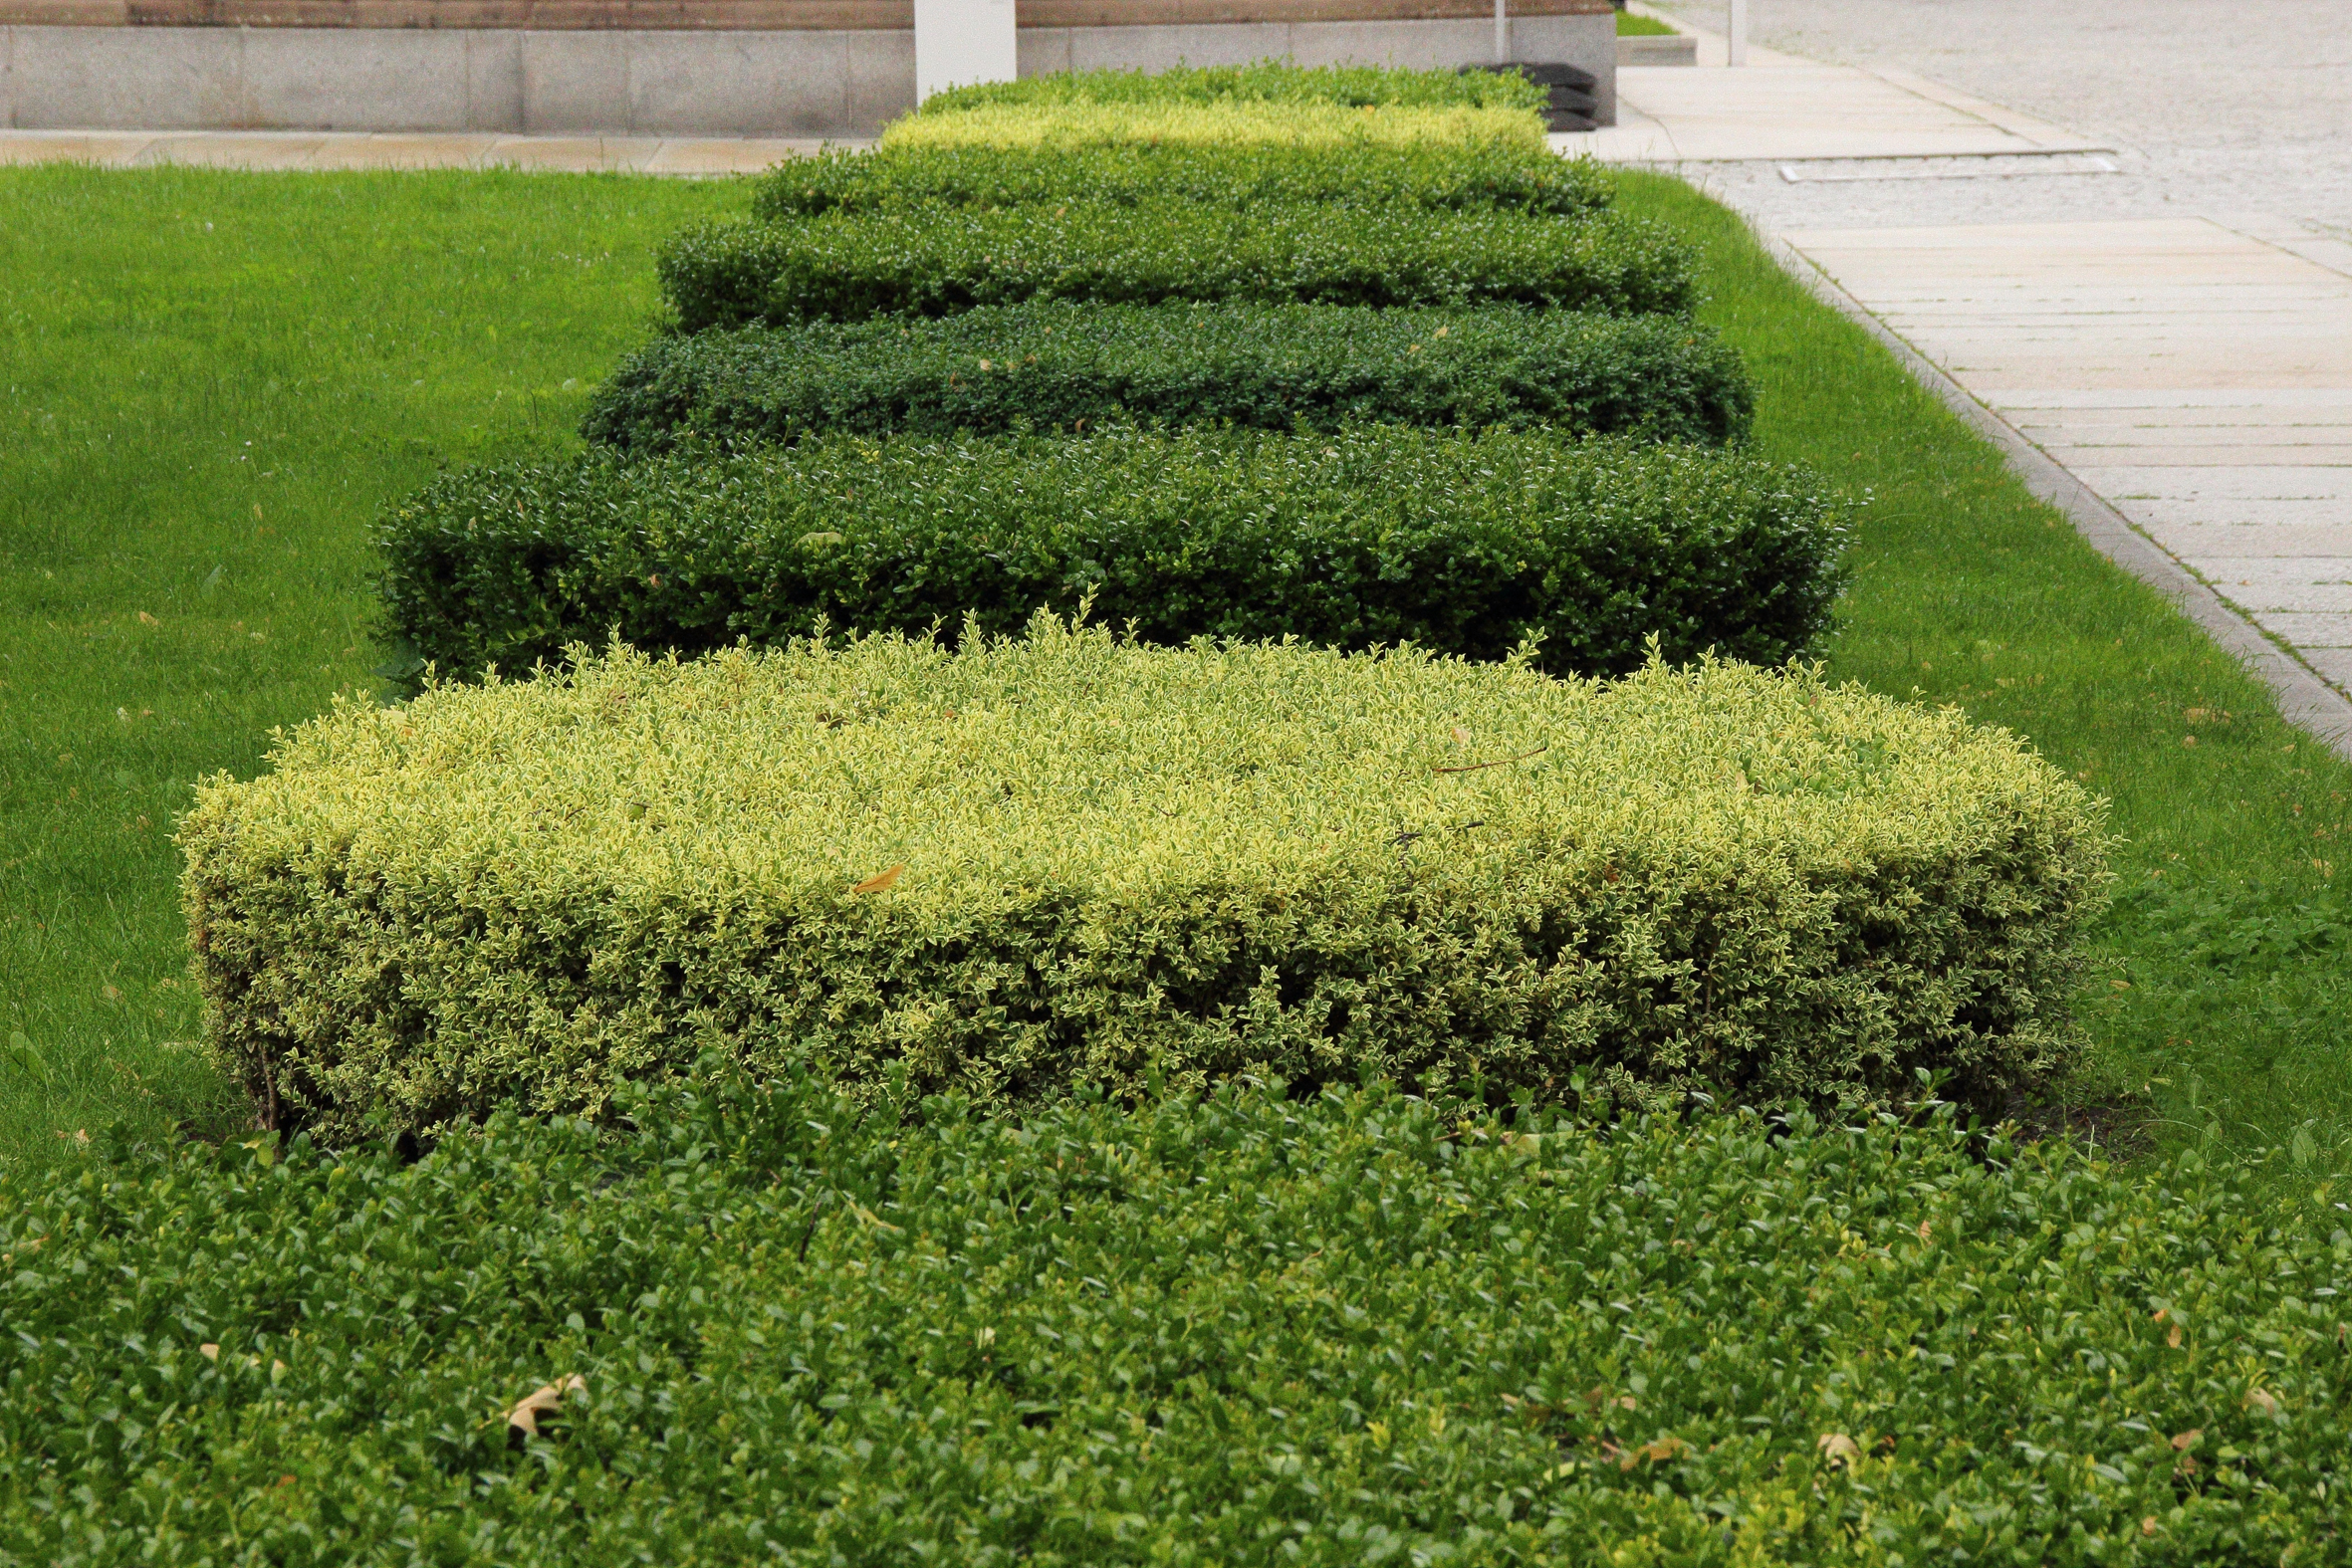 Hedge Cutting - We offer a hedge cutting service whether it's one large shrub or a tall hedge. We can prune your Pittosporum, trim your Taxus baccata or even re‐shape your Rhododendron.